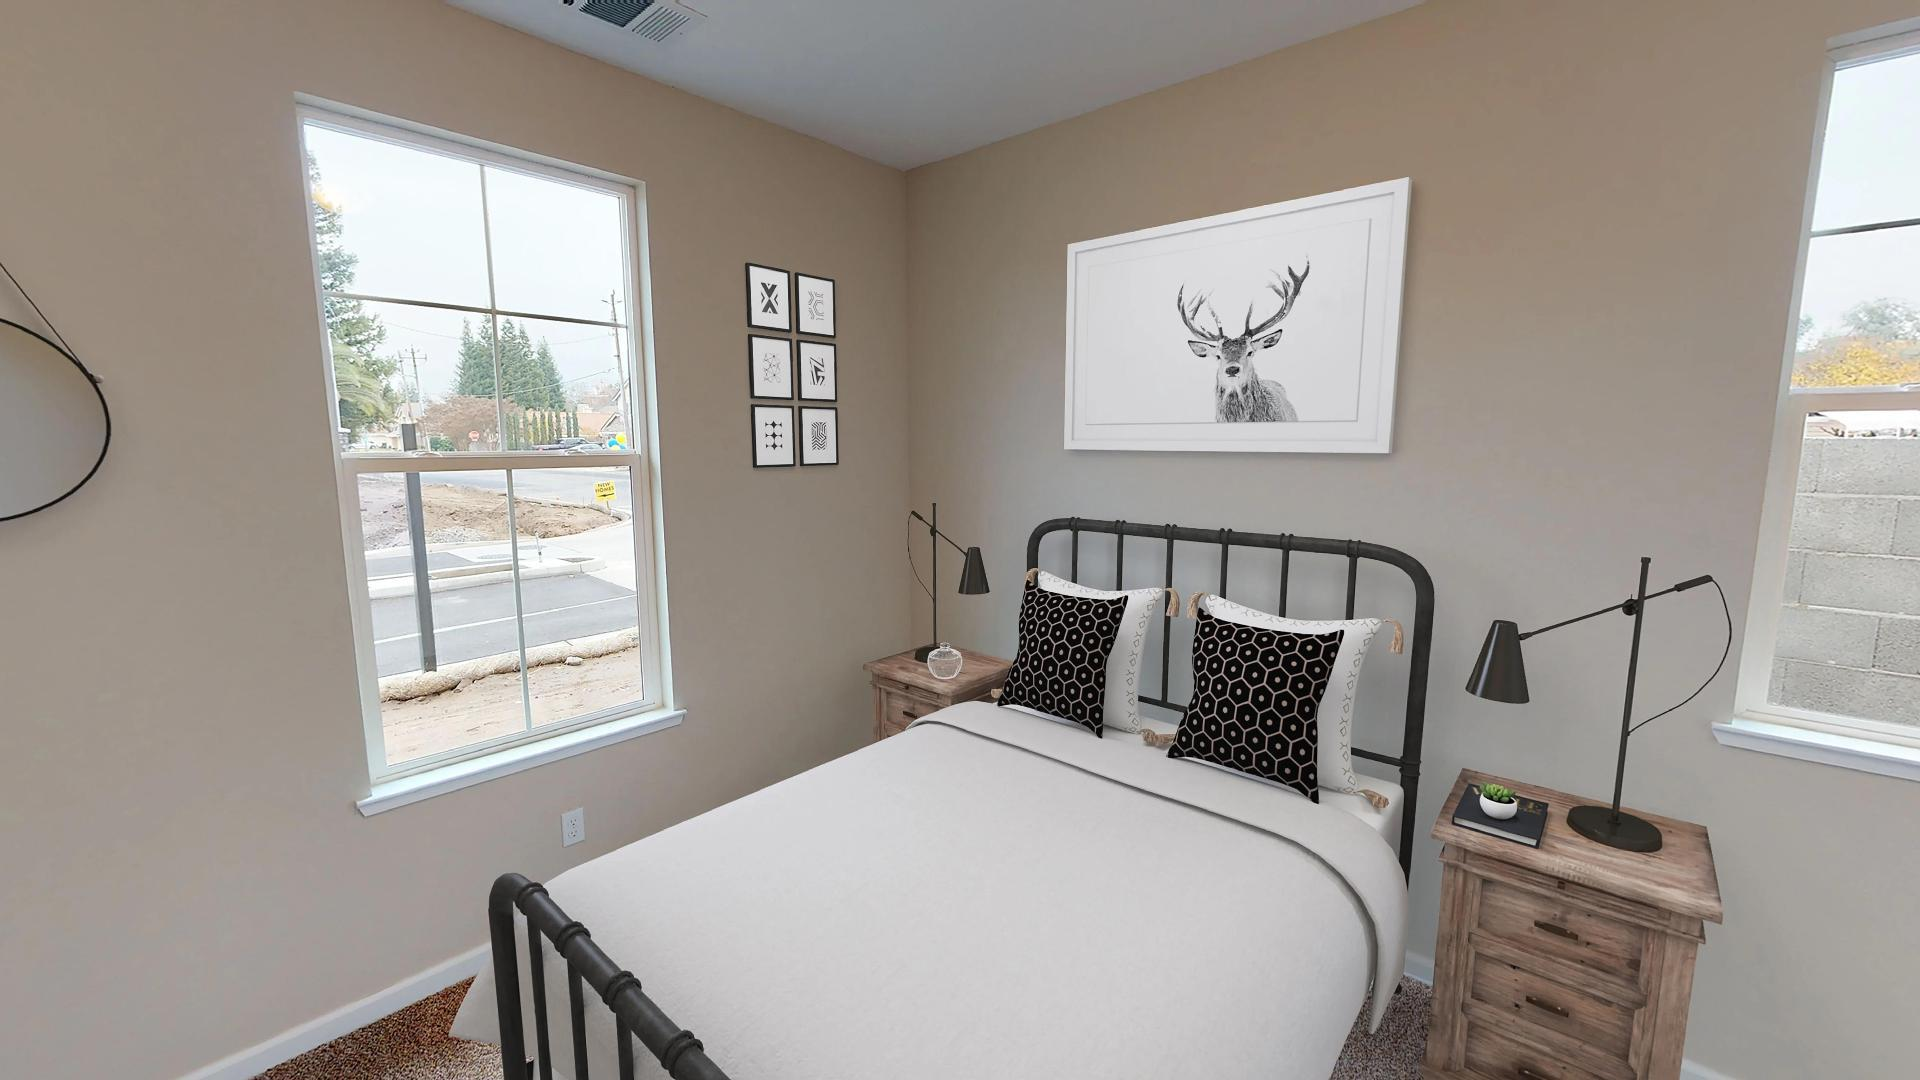 Bedroom featured in The Rubicon By Windward Pacific Builders in Modesto, CA